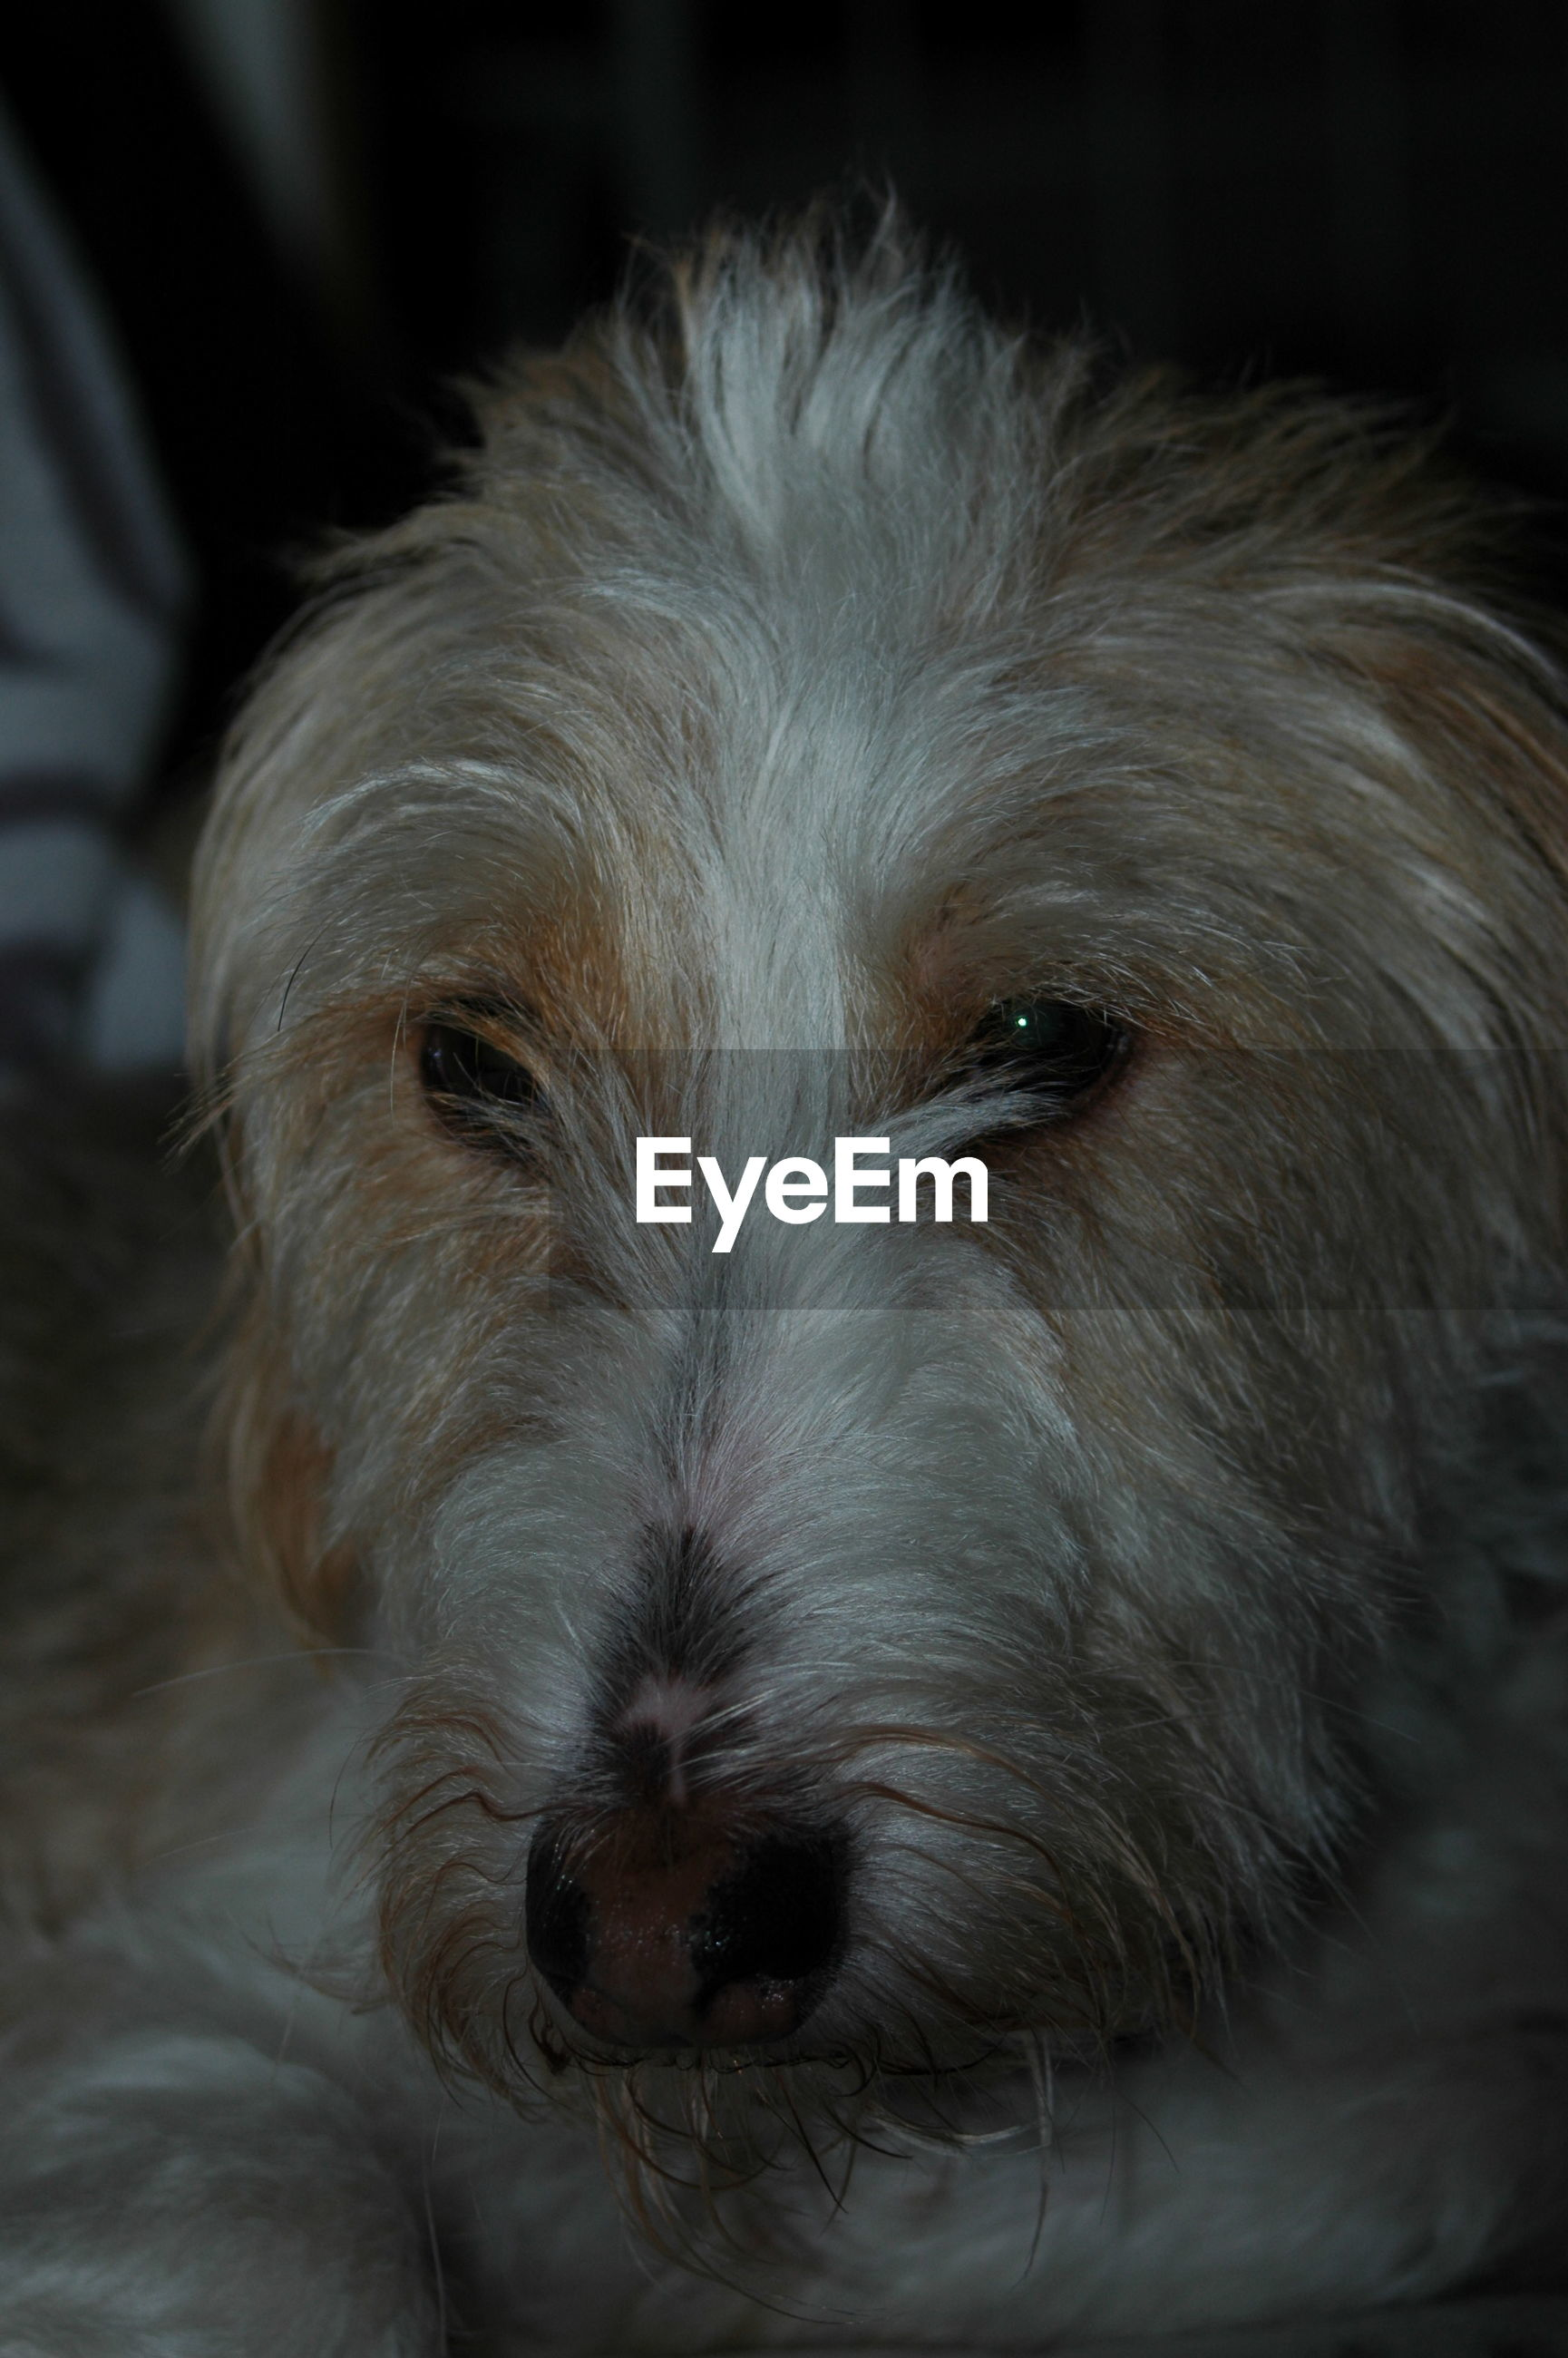 CLOSE-UP PORTRAIT OF A DOG WITH EYES